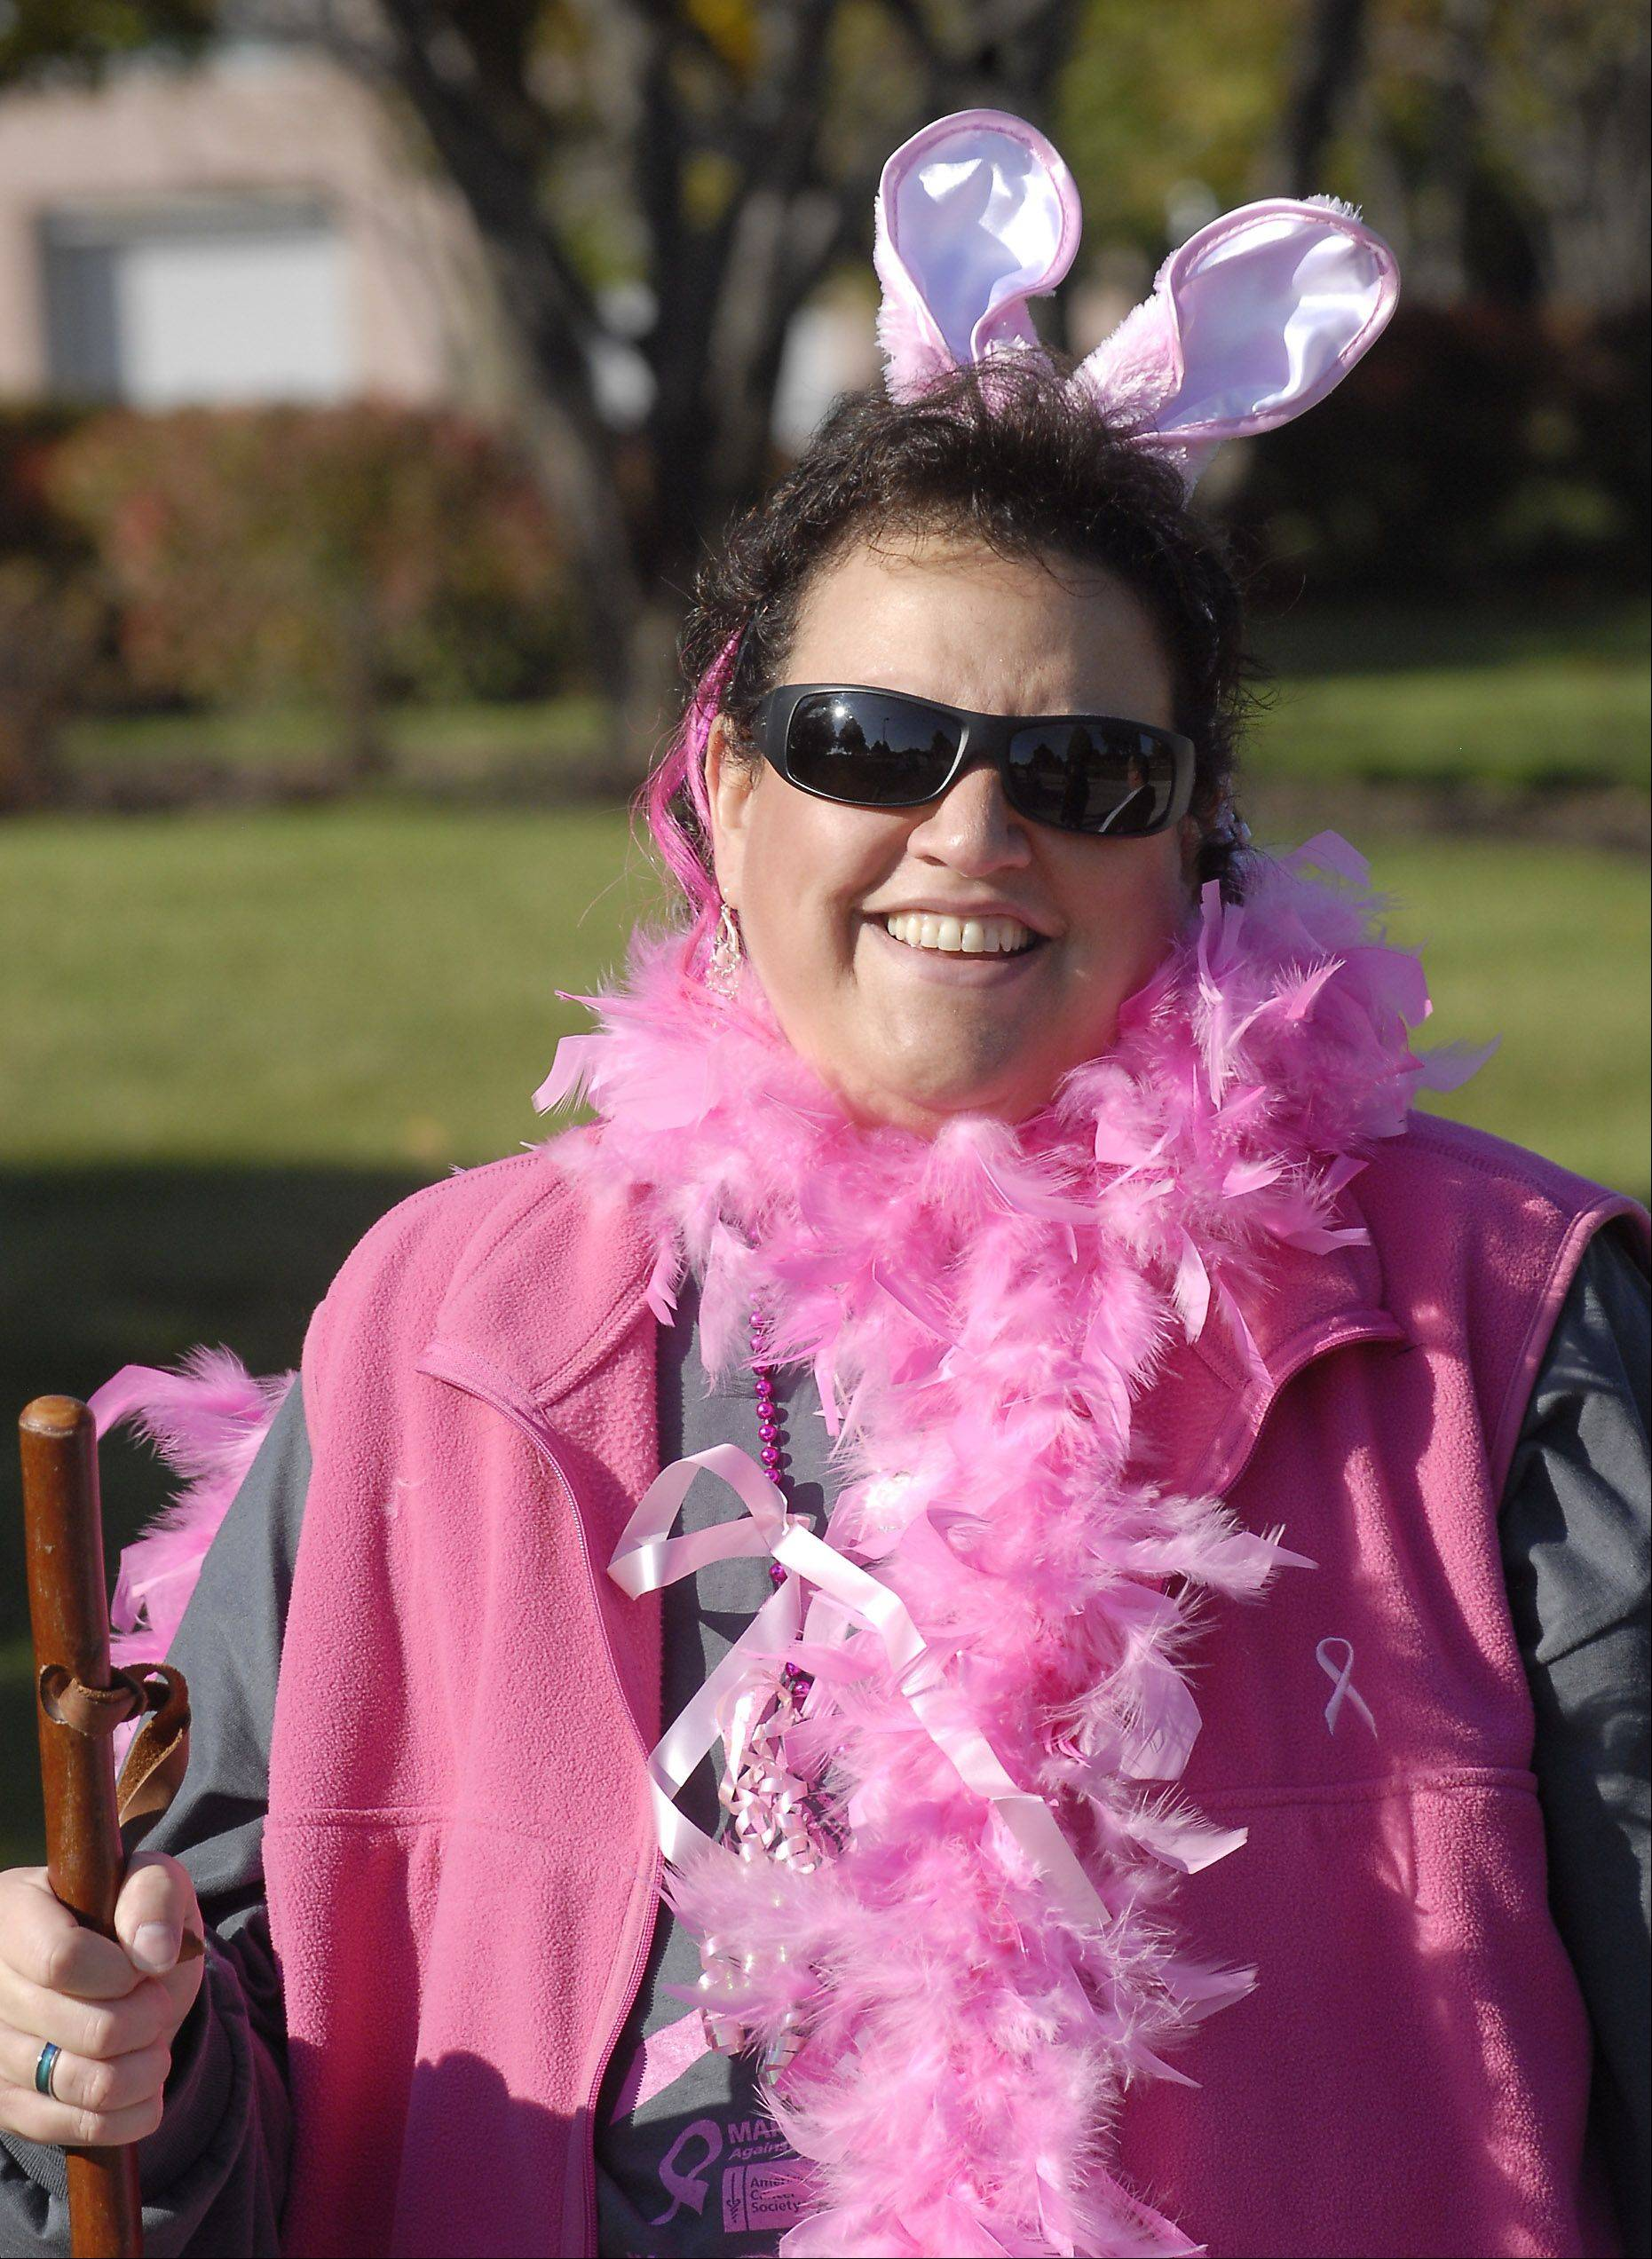 For survivors, the Making Strides walks often are a celebration of their triumph over cancer and the life they have yet to live.